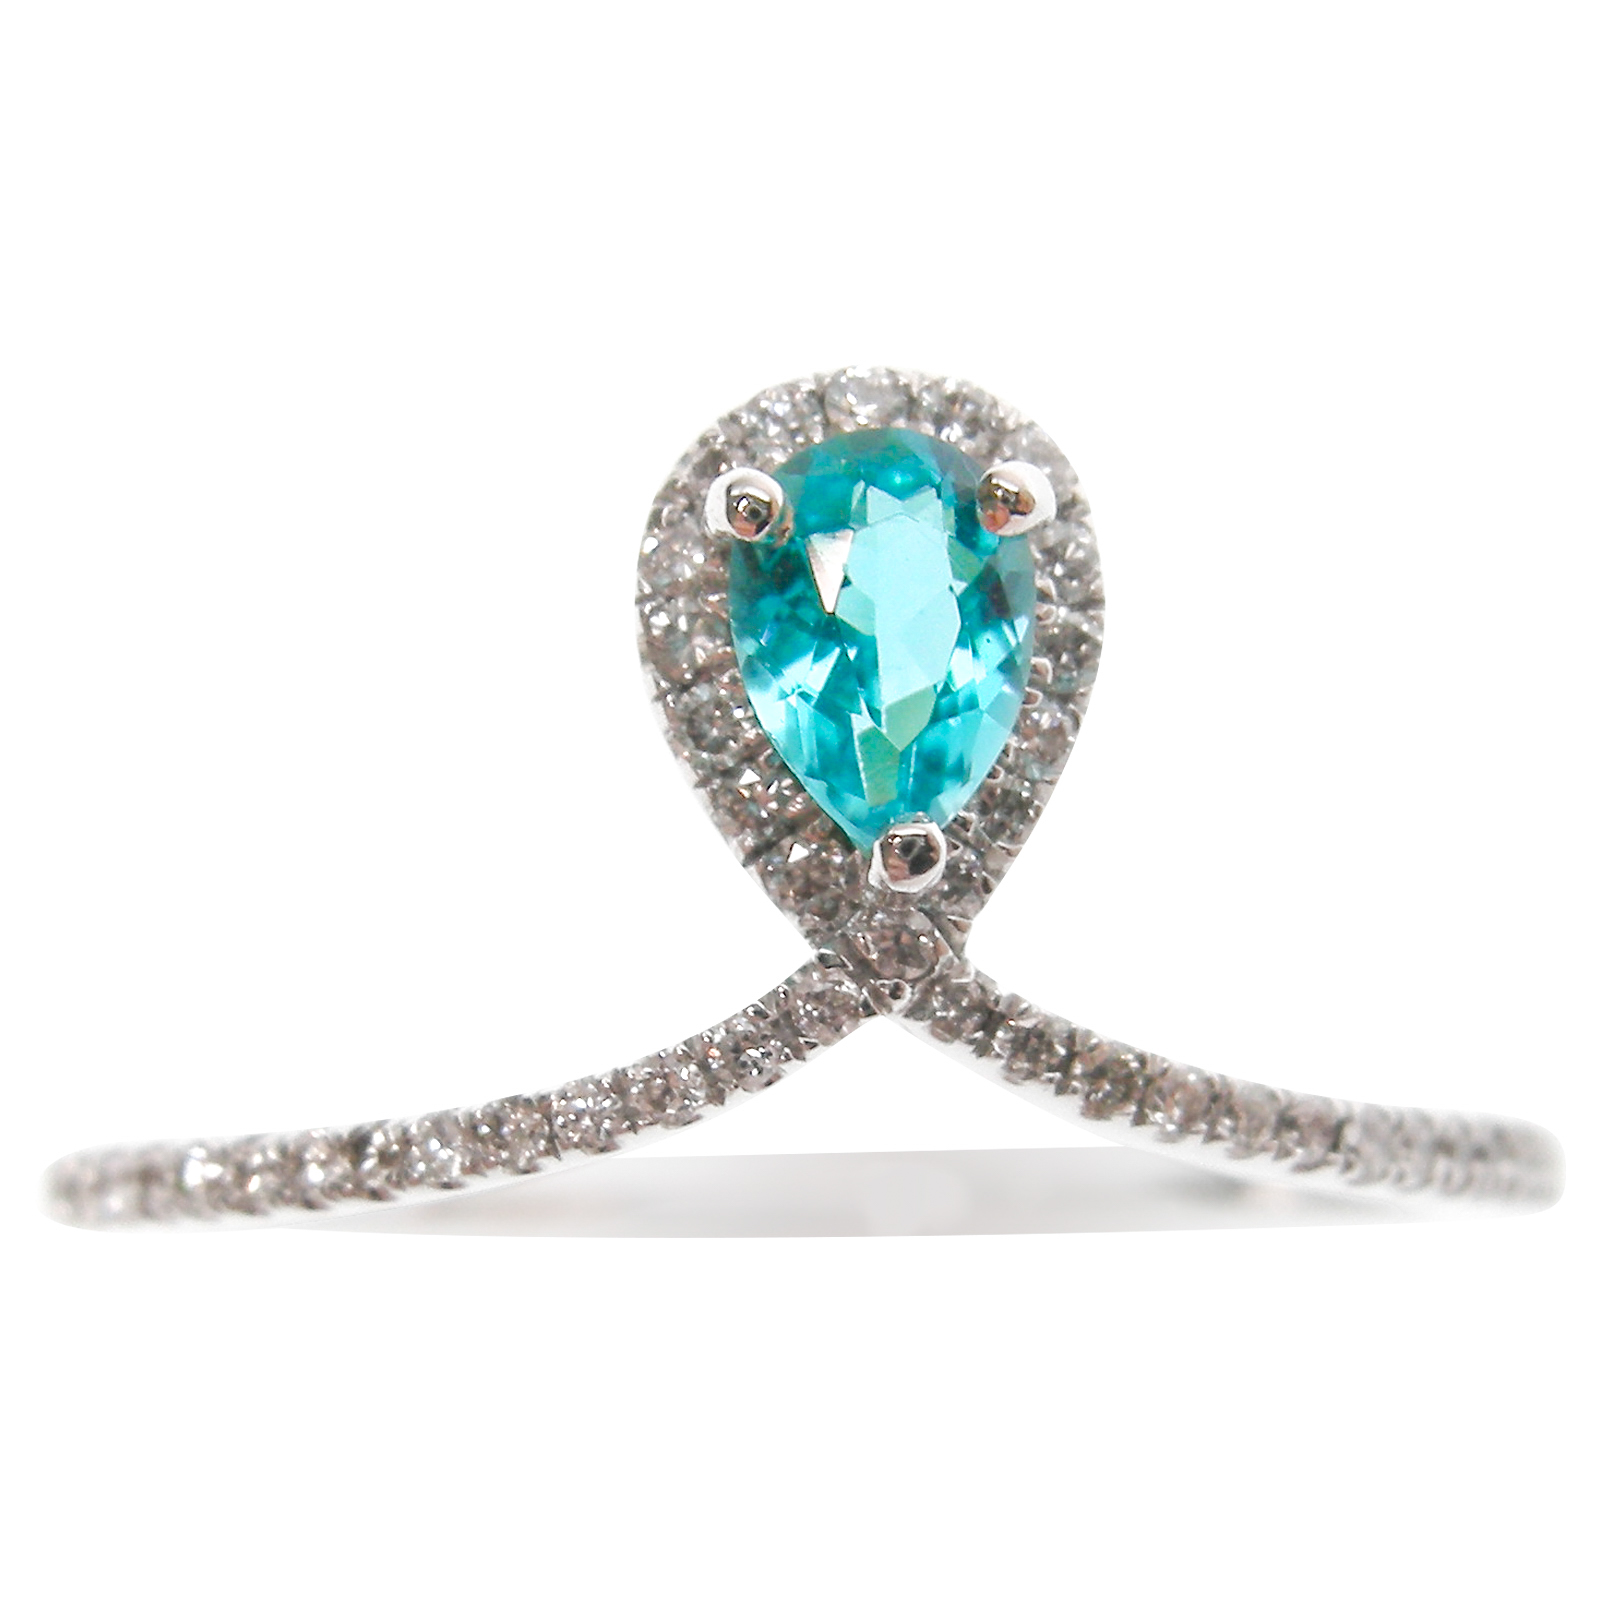 PARAIBA & DIAMOND TIARA RING BESPOKE FINE JEWELLERY BY SHAHINA HATTA